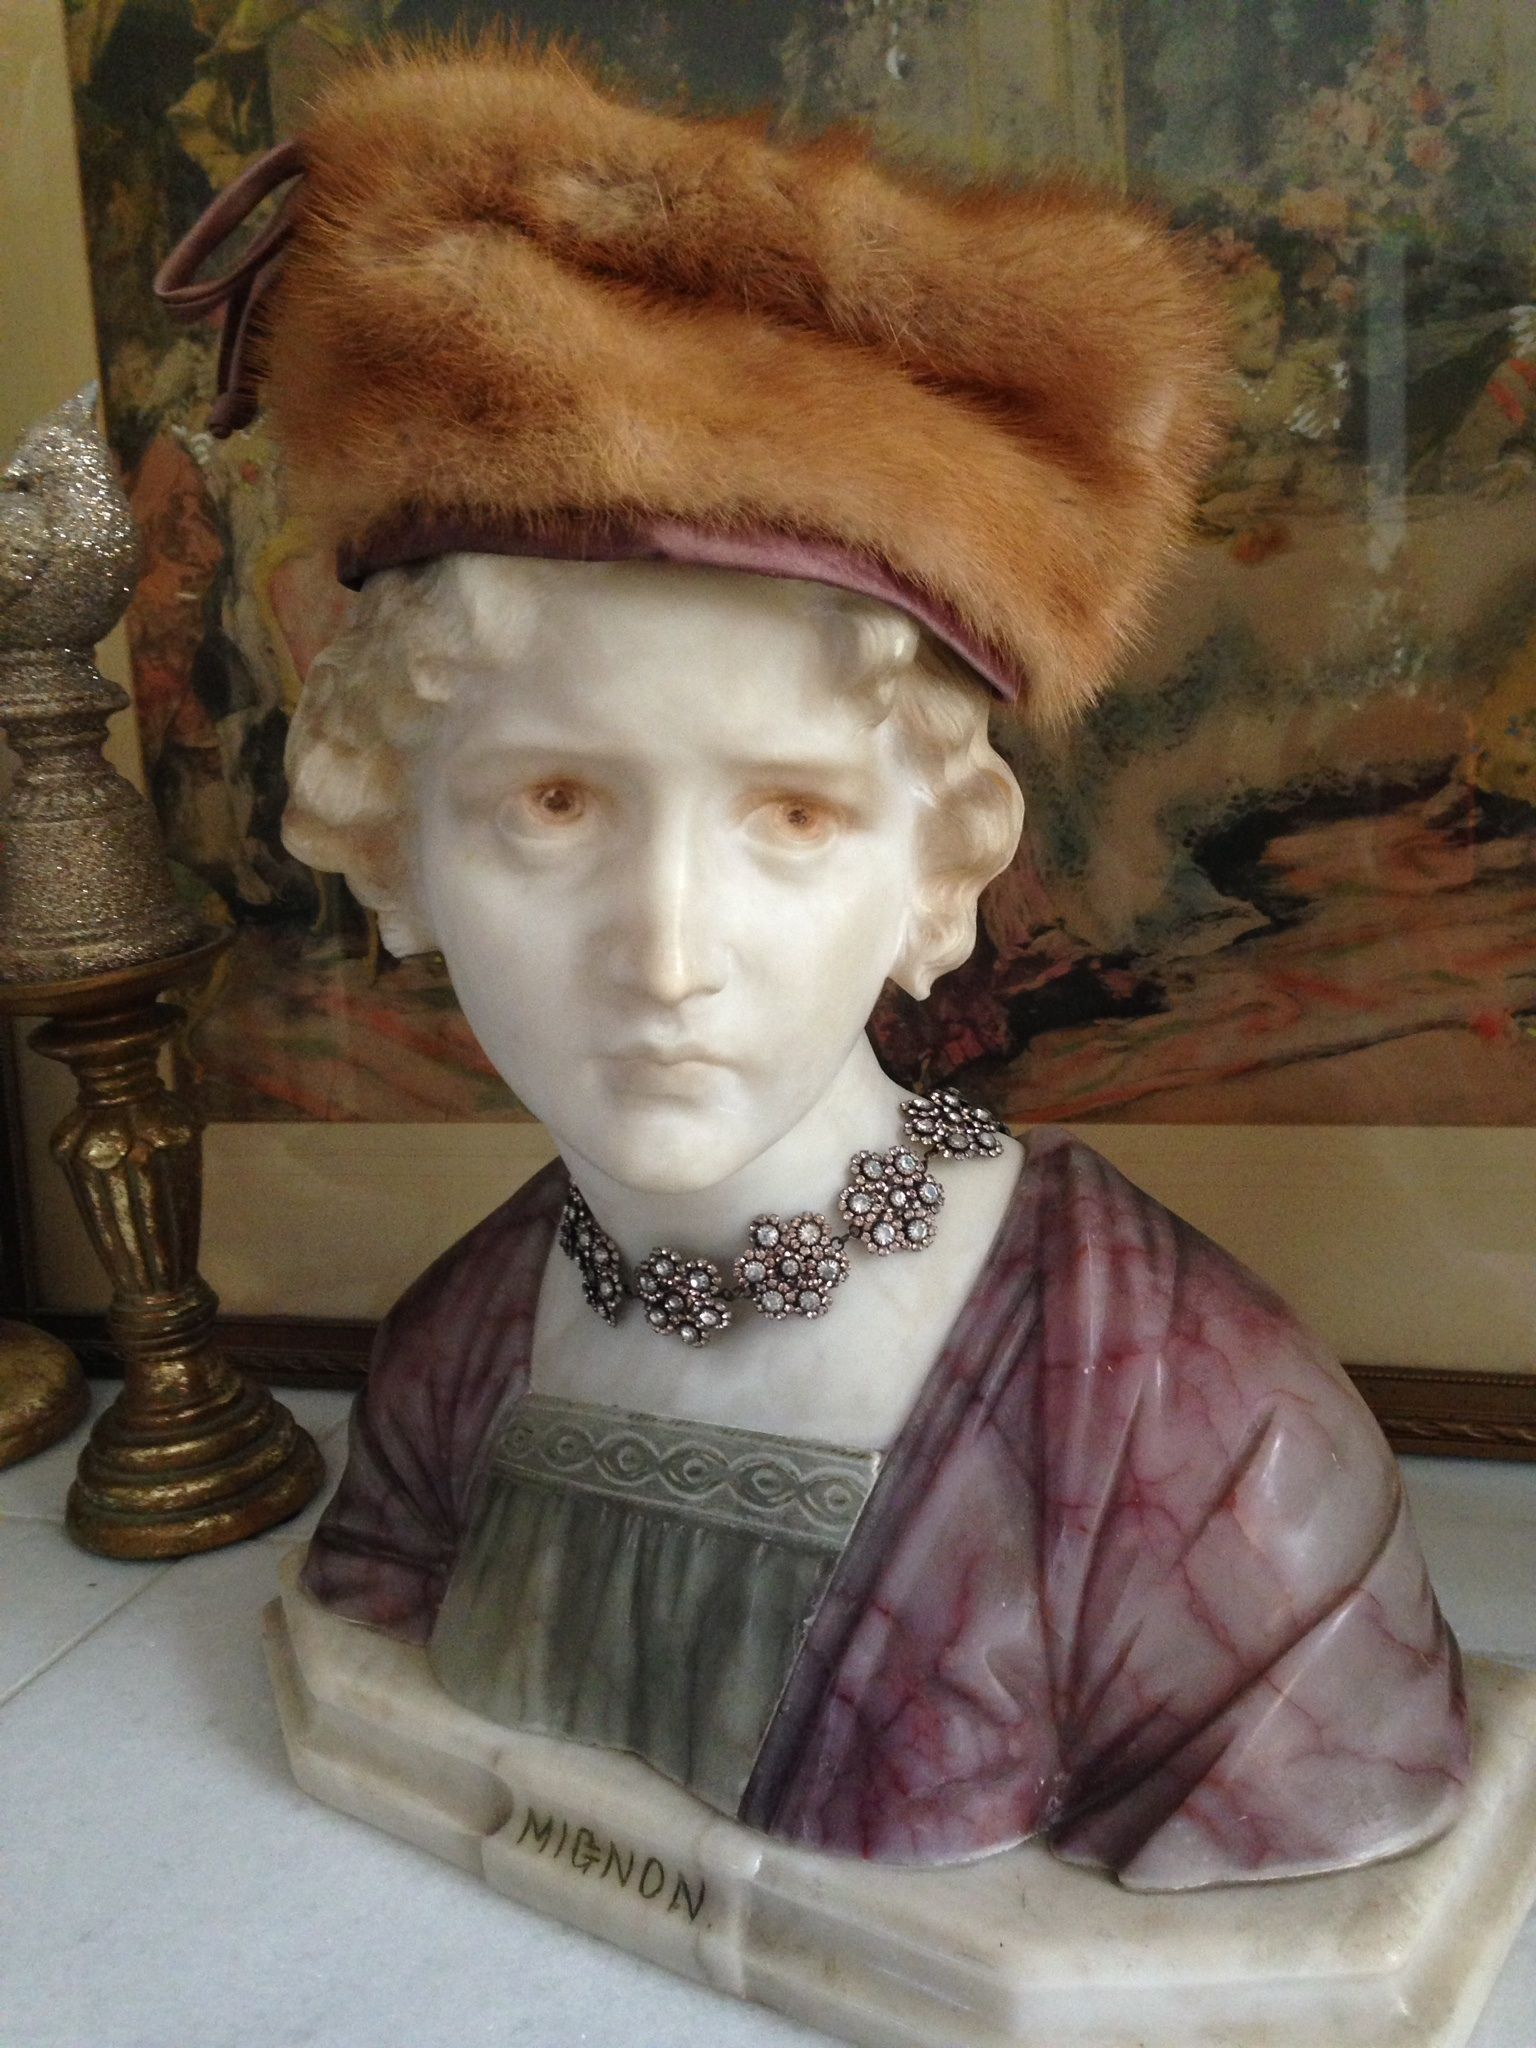 My Favorite Possession! Exquisite Vintage Italian Alabaster & Marble Bust. She Is Wearing A Vintage Mink Hat & Dreamy Choker Necklace.